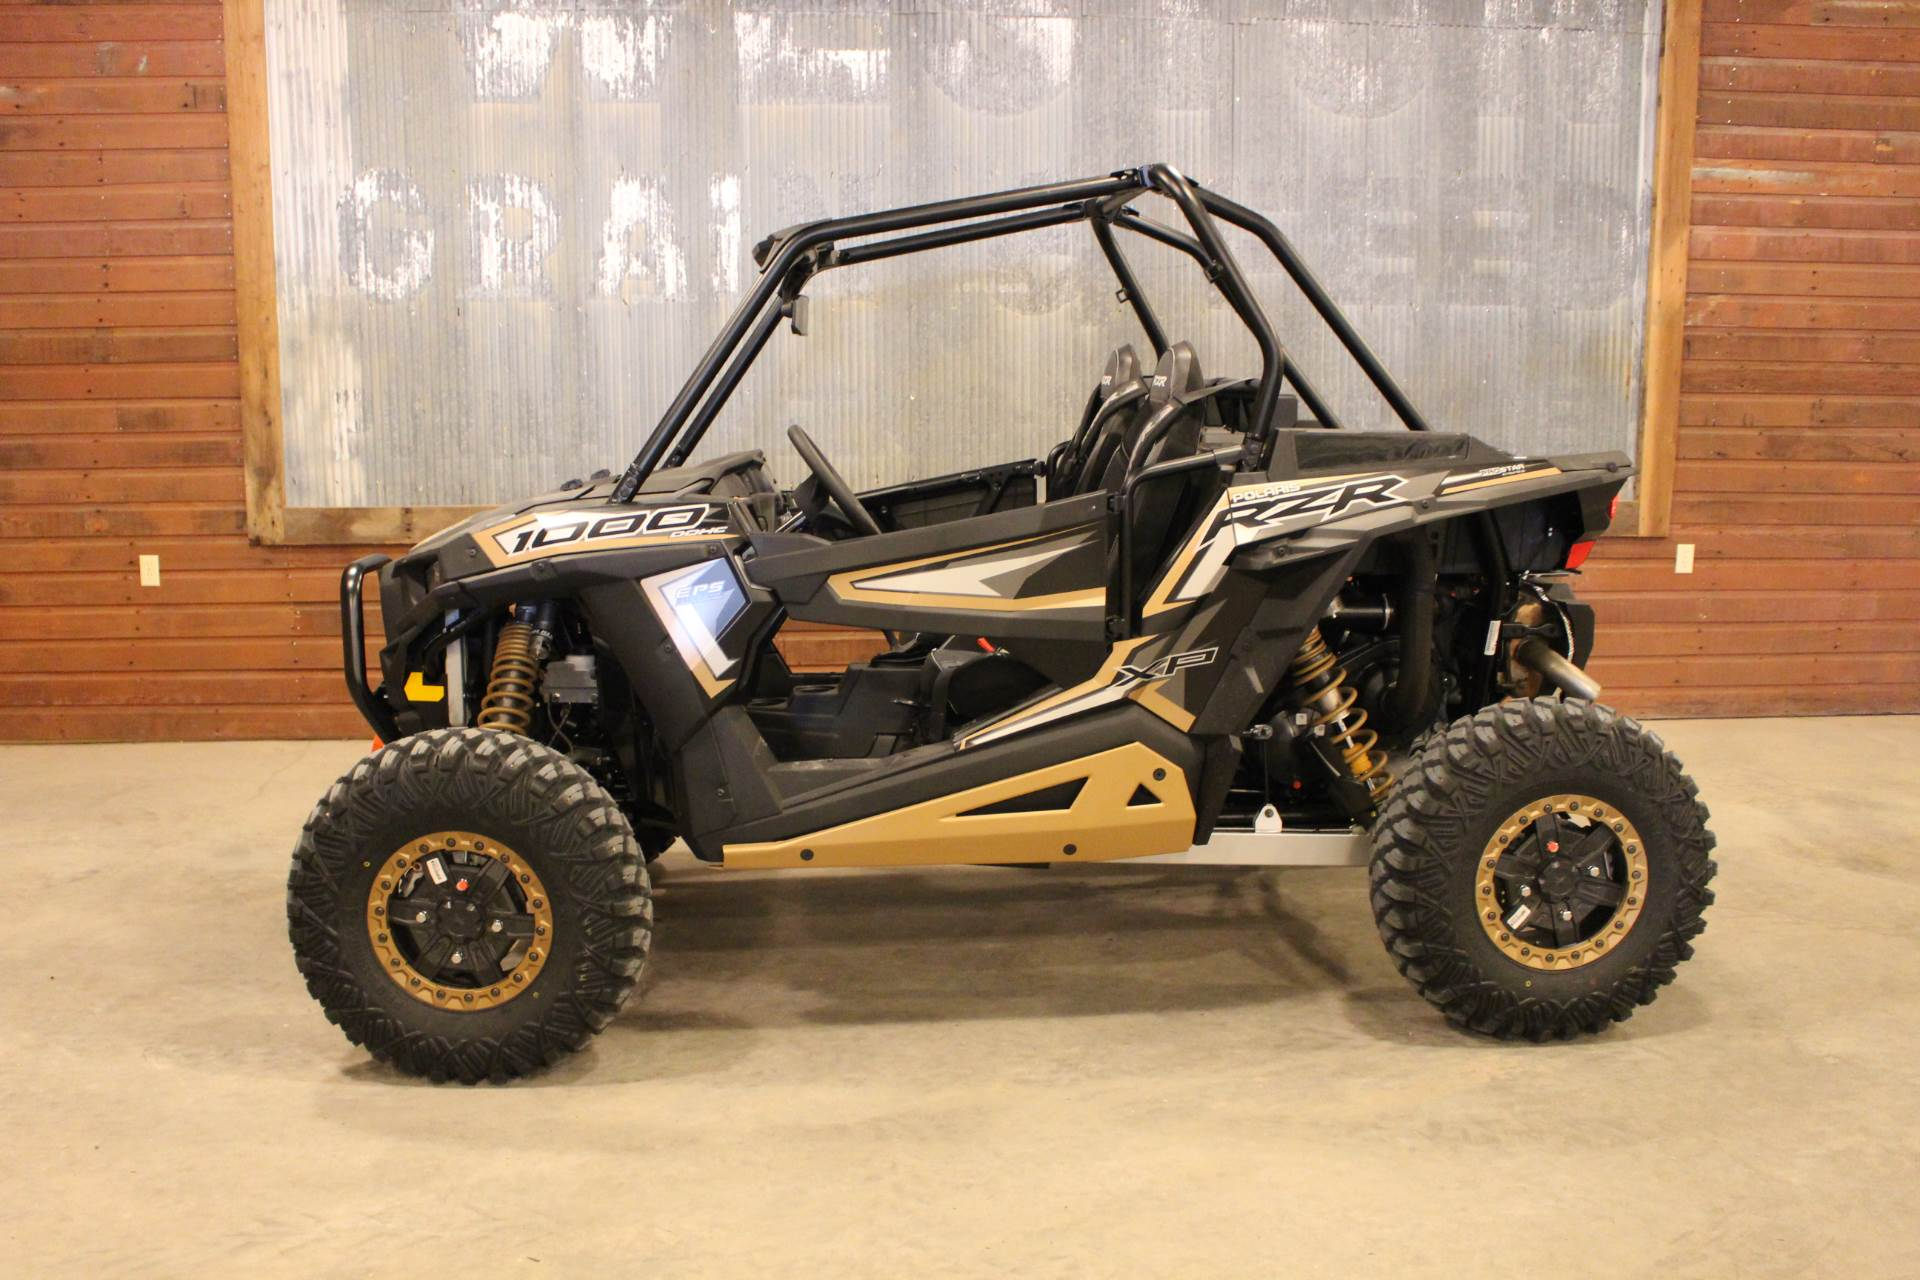 2018 Polaris RZR XP 1000 EPS Trails and Rocks Edition for sale 24793